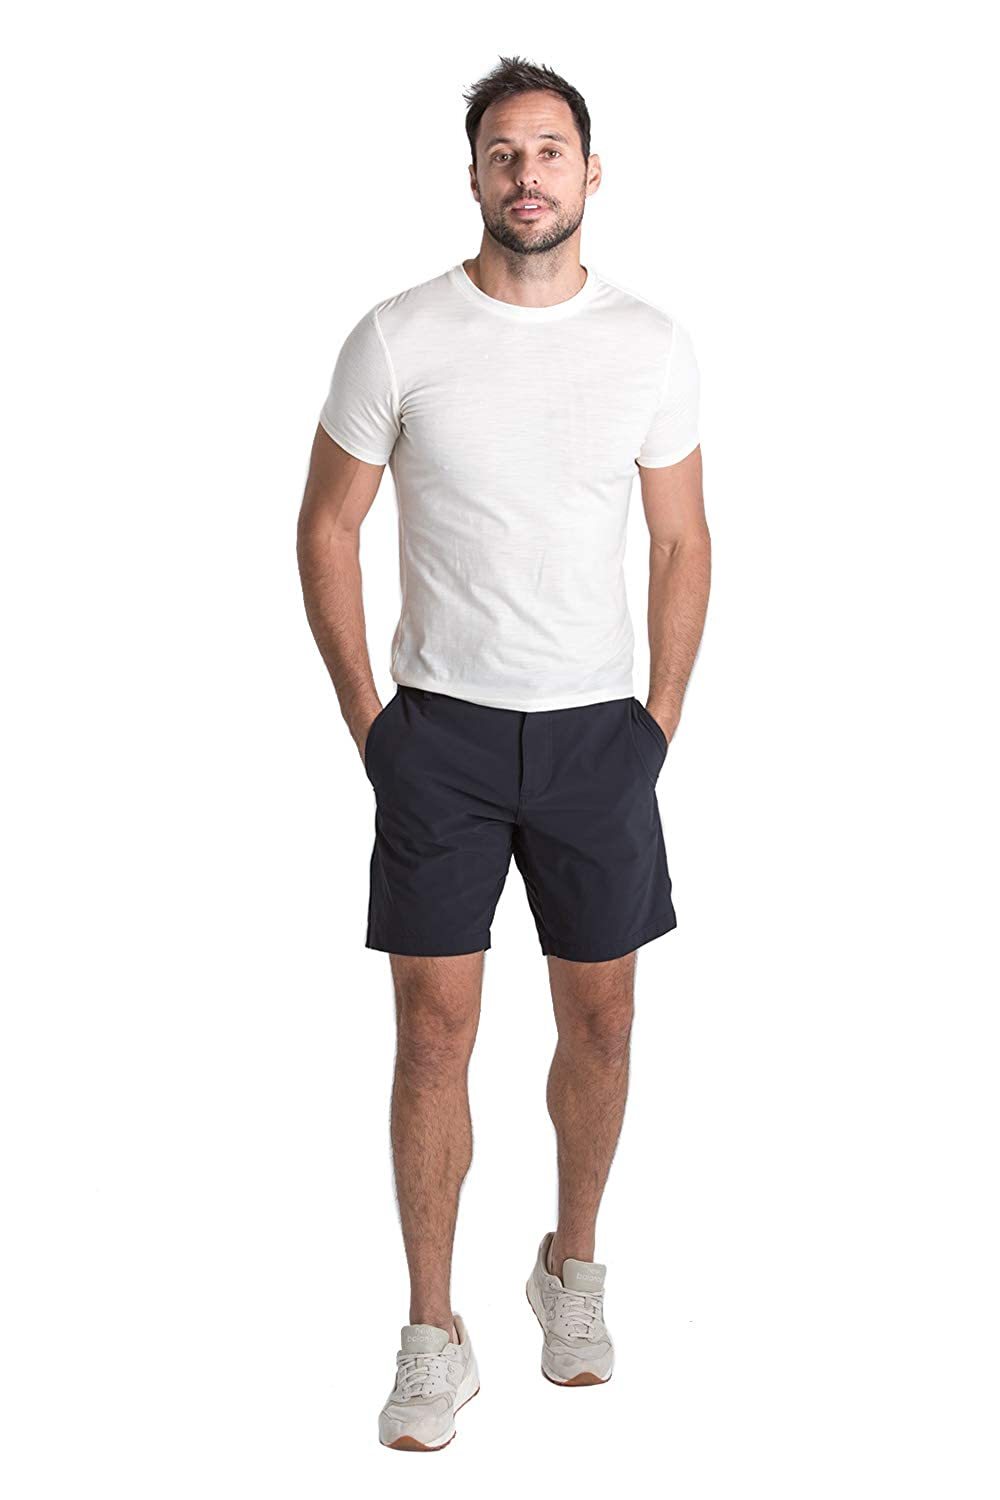 4-Way Stretch Capital Shorts Olivers Apparel